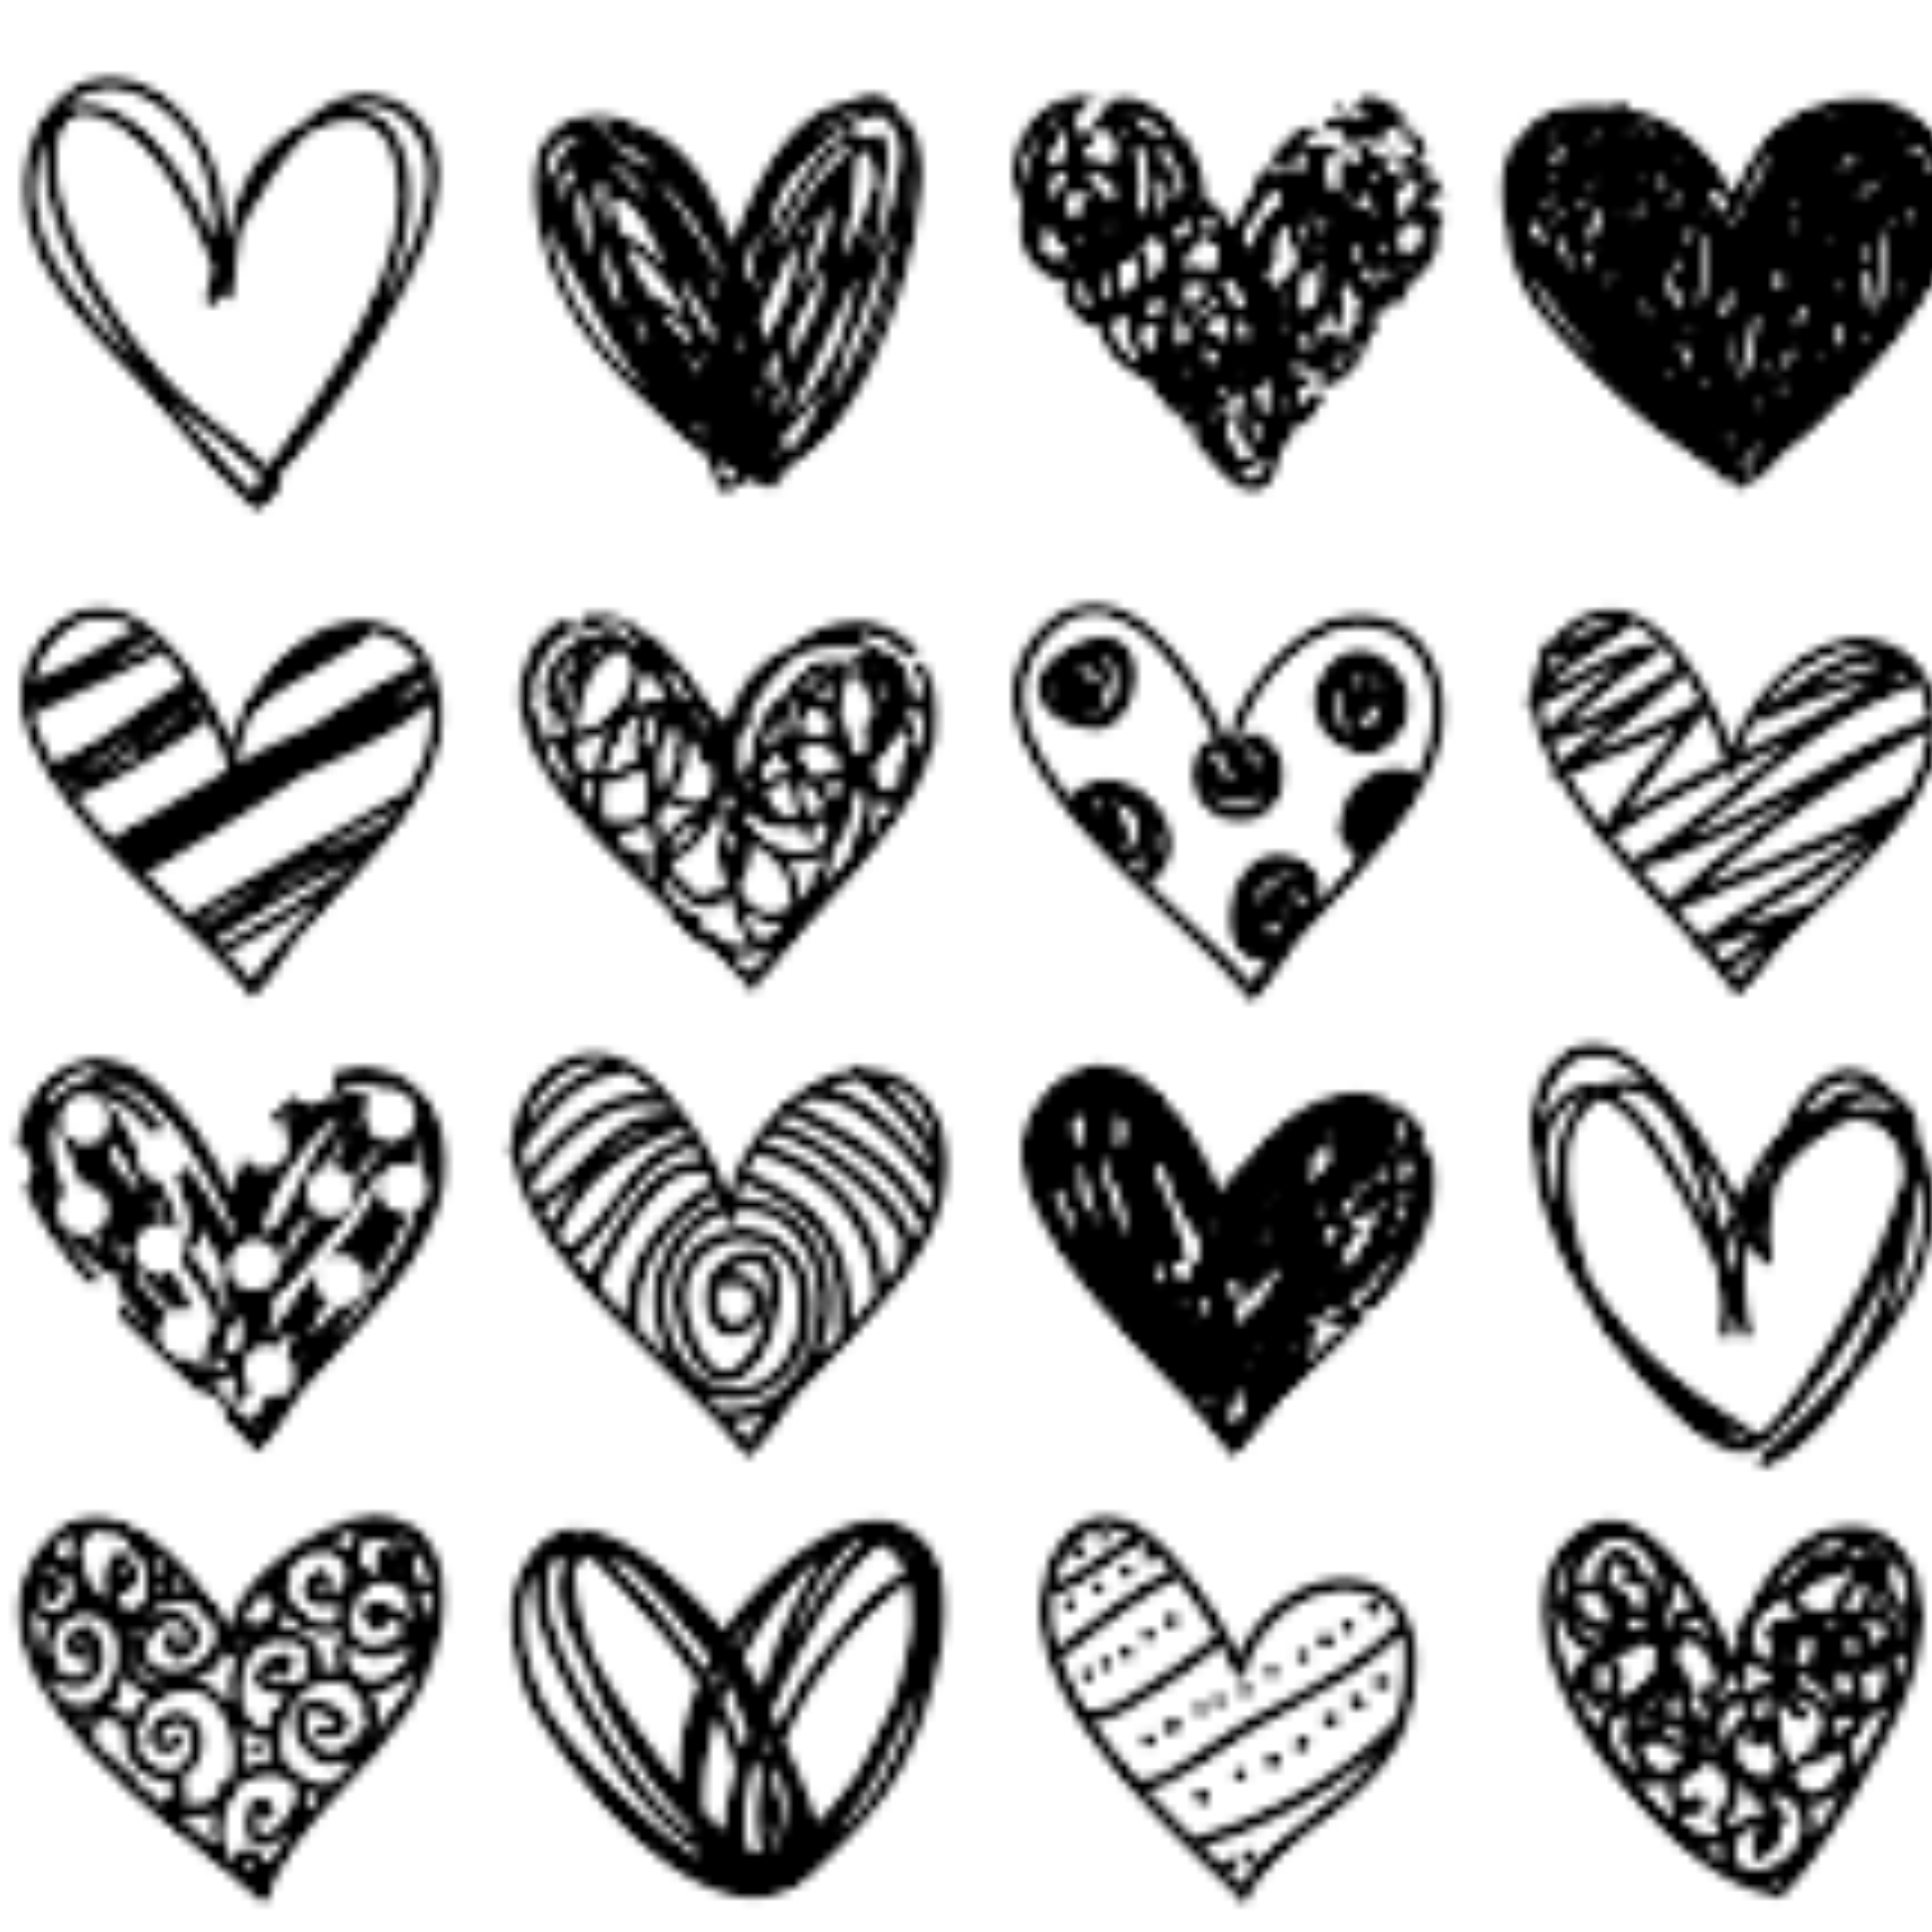 Pictures of hand drawn hearts